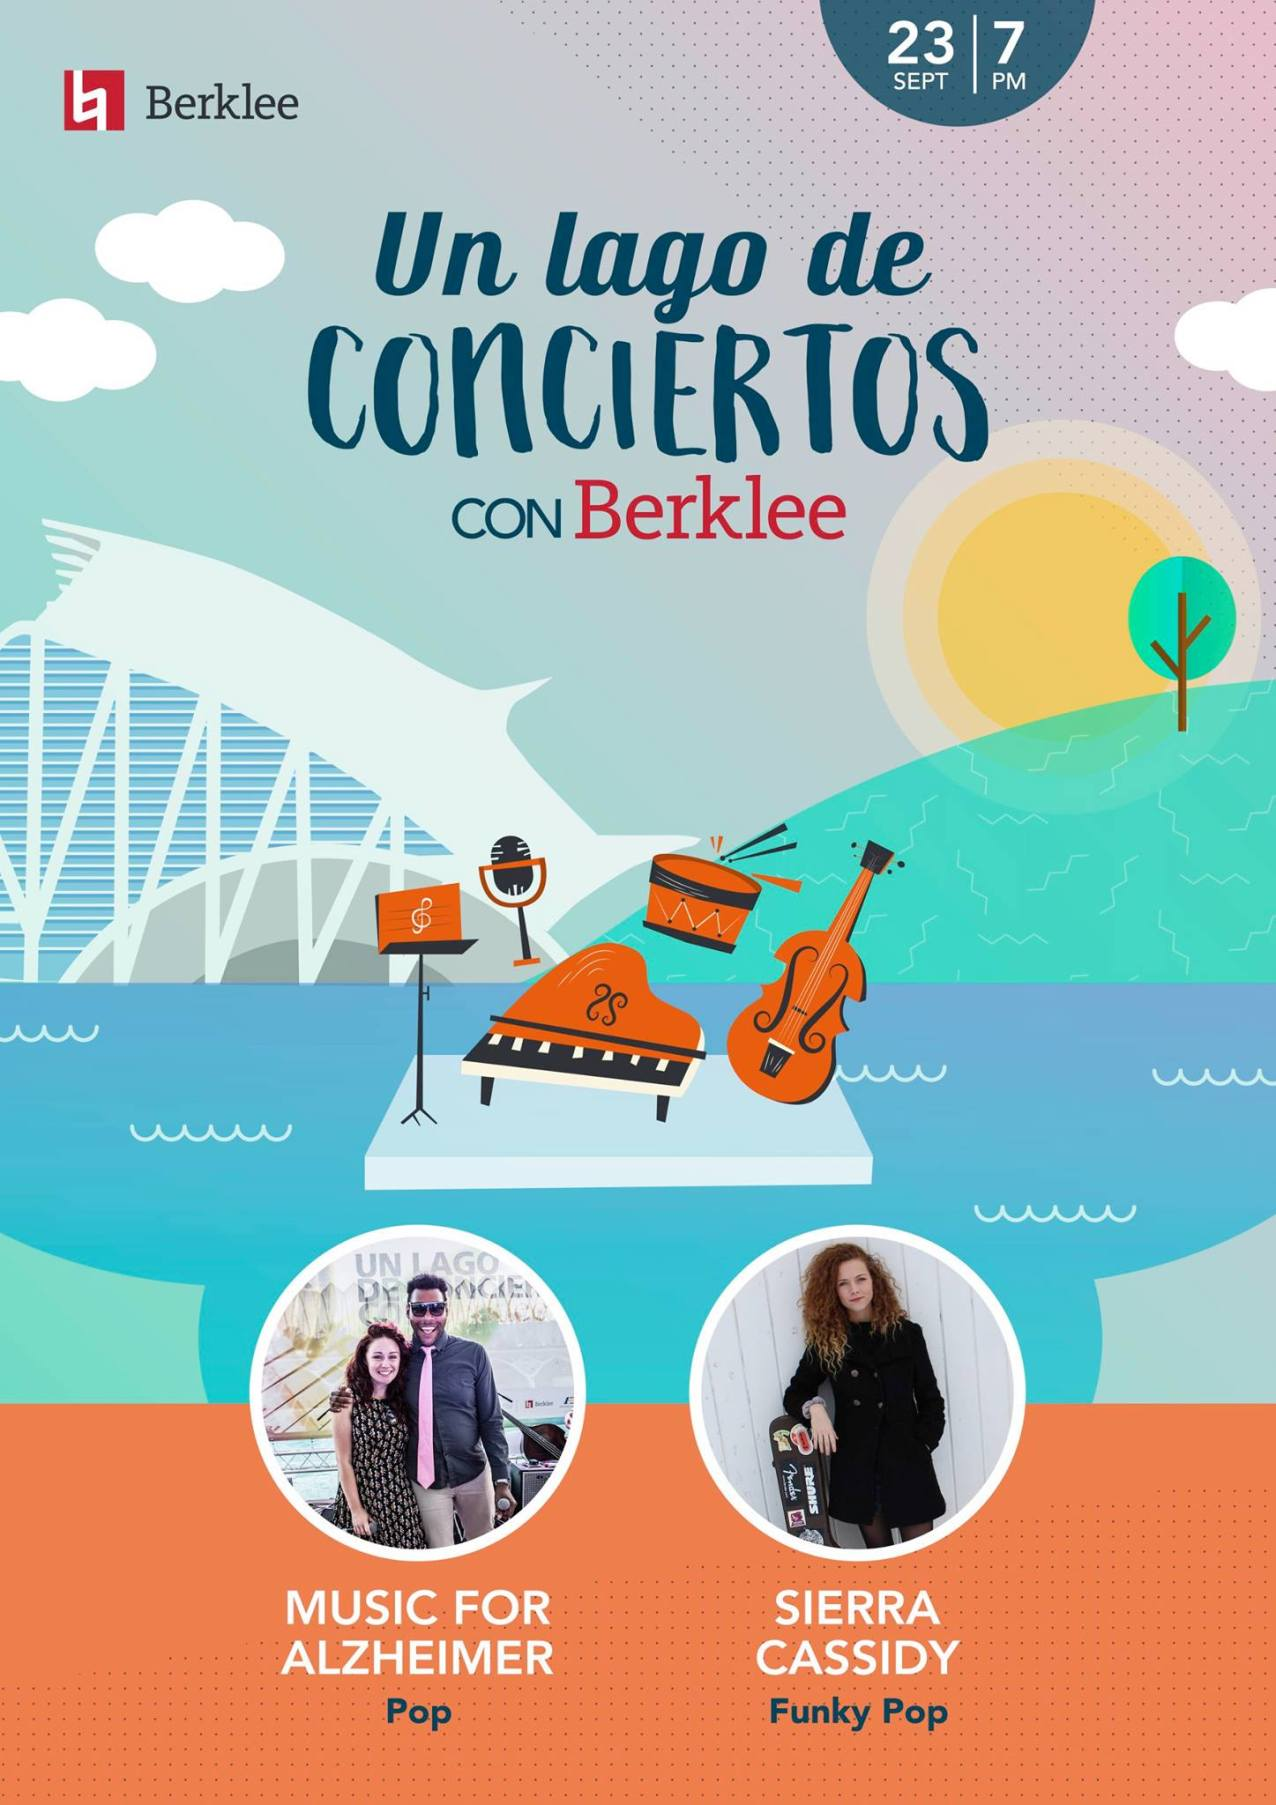 Performing as part of Music Therapy Week at Un Lago De Conciertos, Berklee Valencia